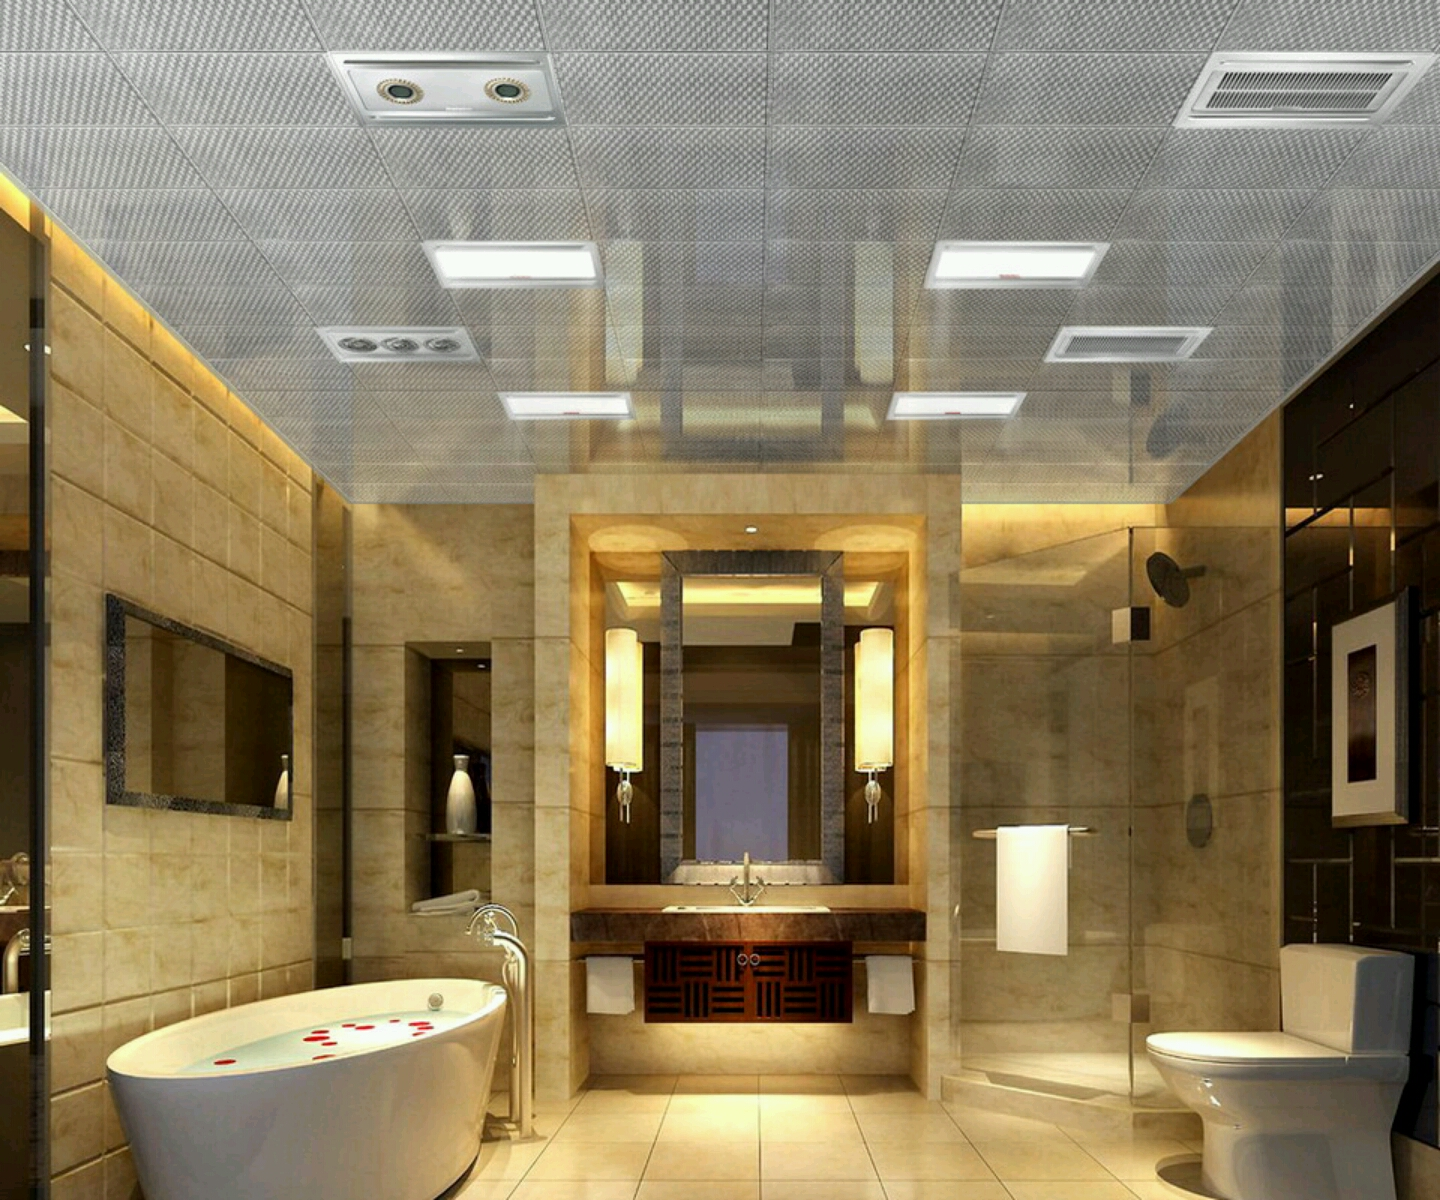 New home designs latest luxury bathrooms designs ideas for Pictures of new bathrooms